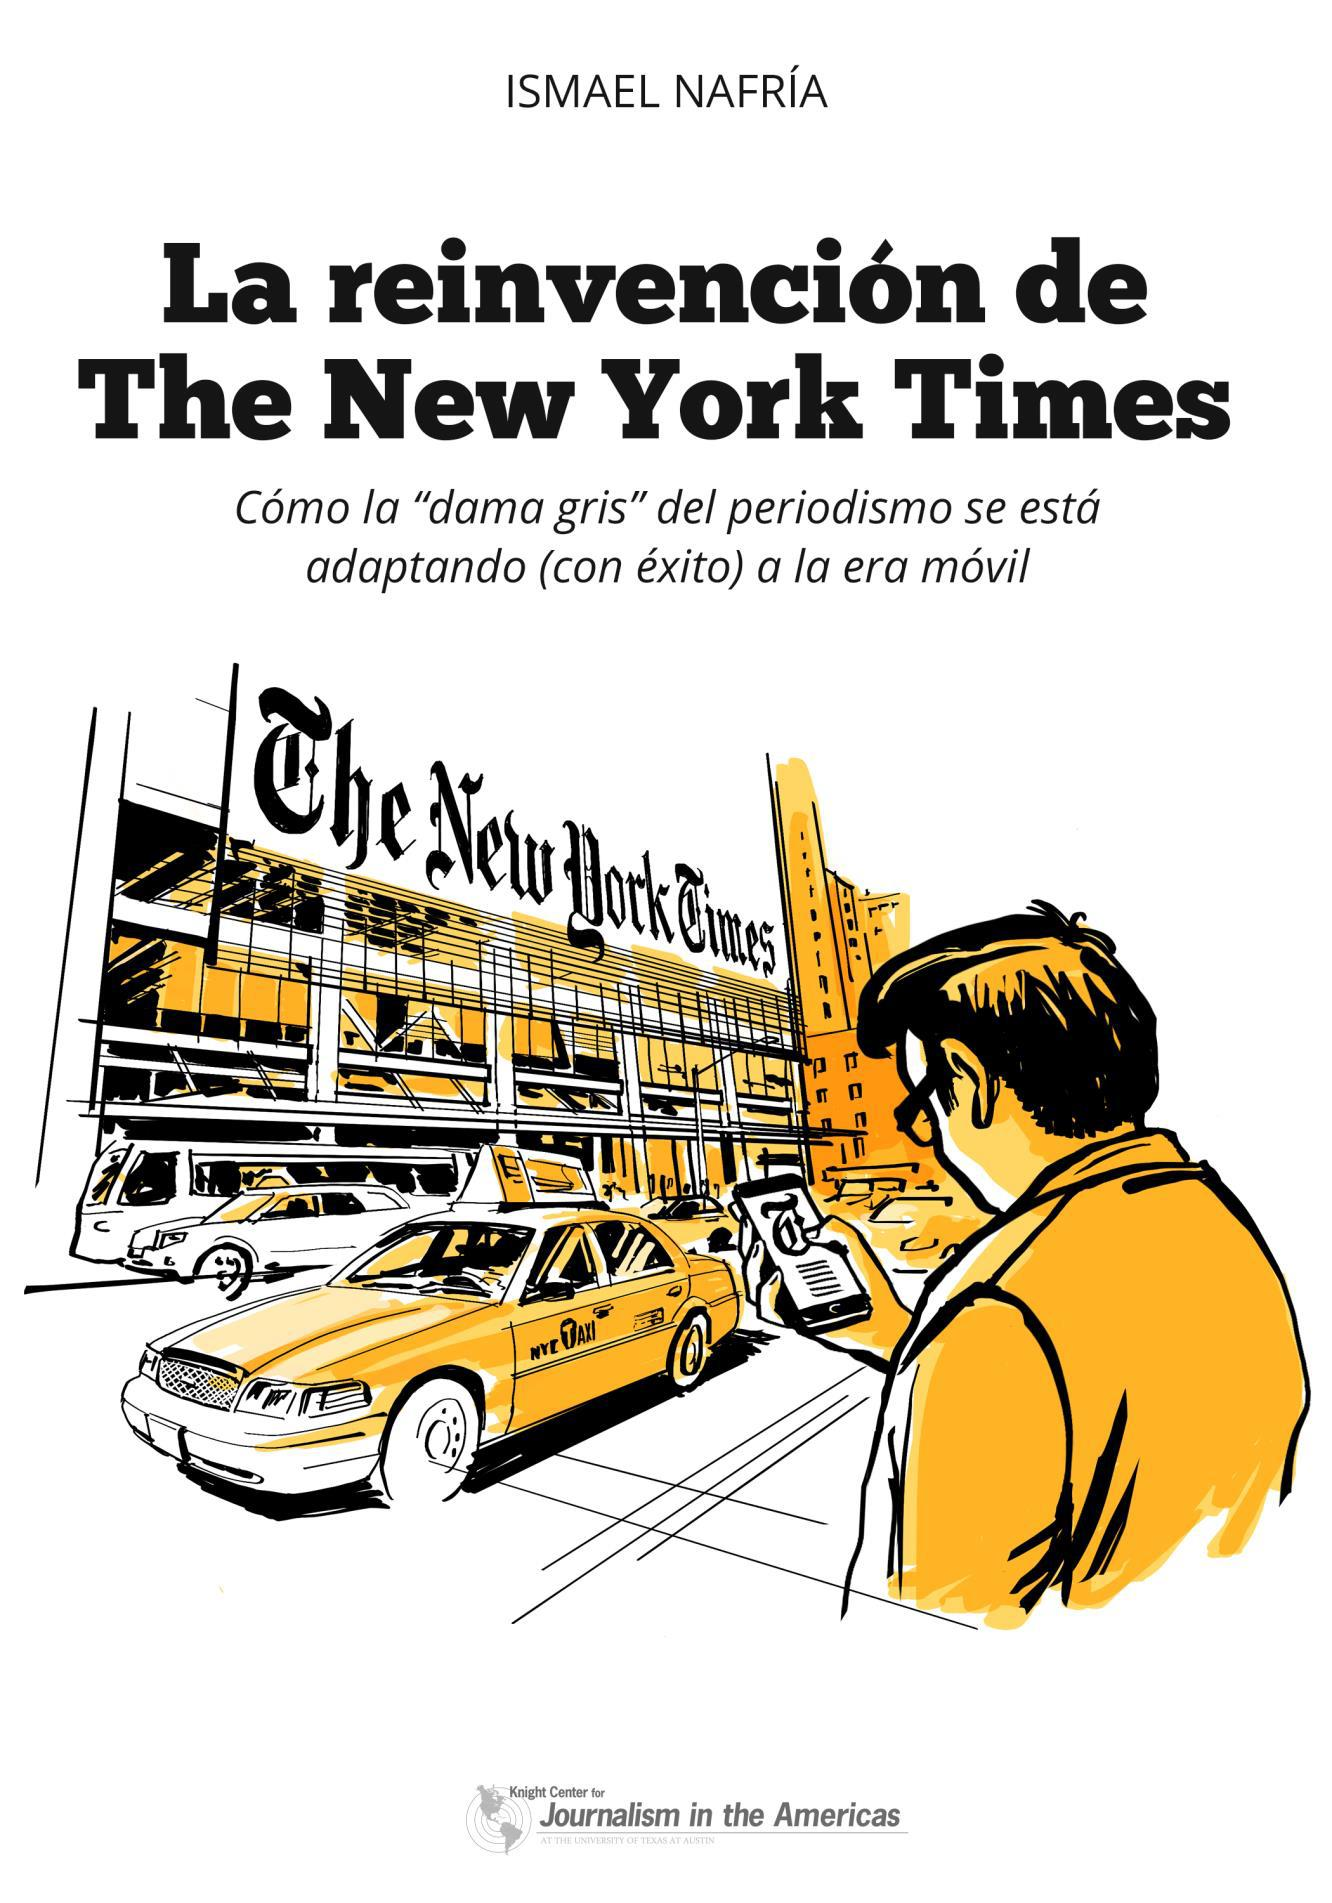 Cómo se está reinventando The New York Times